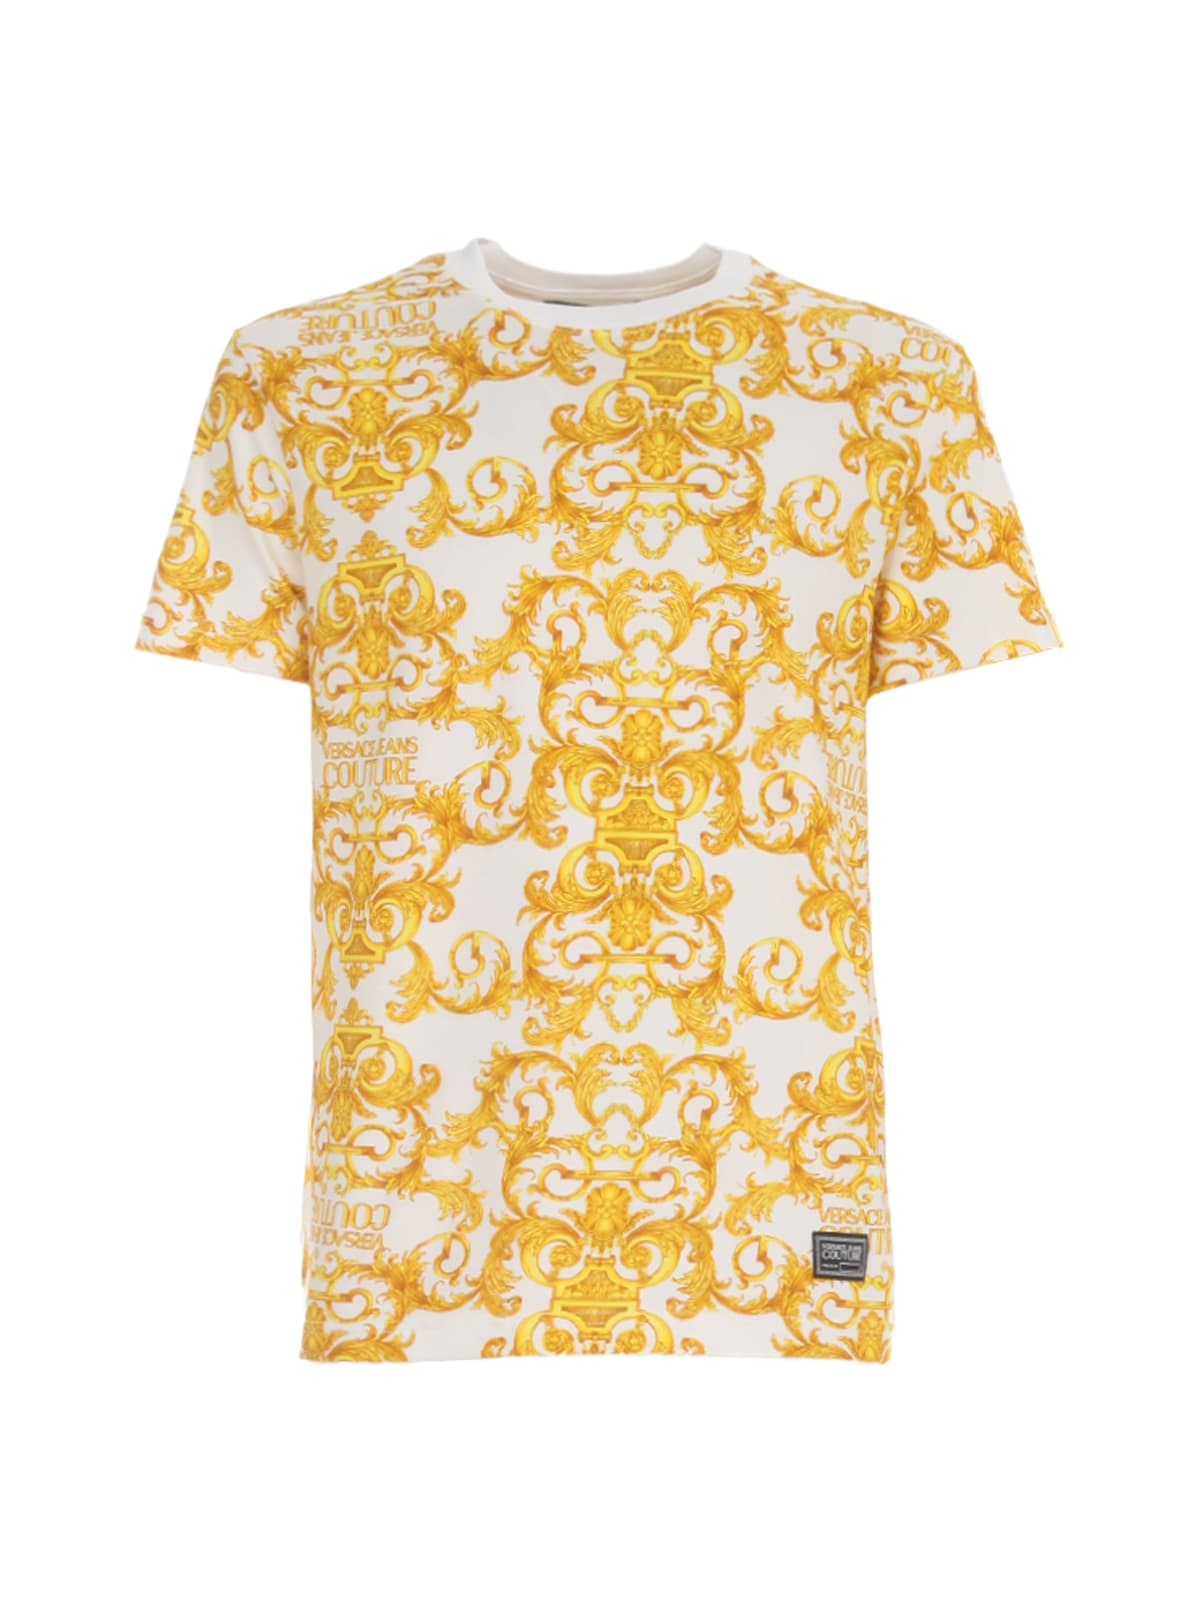 Versace Jeans Couture Slim Logo Baroque Jersey Stretch T-shirt In Bianco Ottico